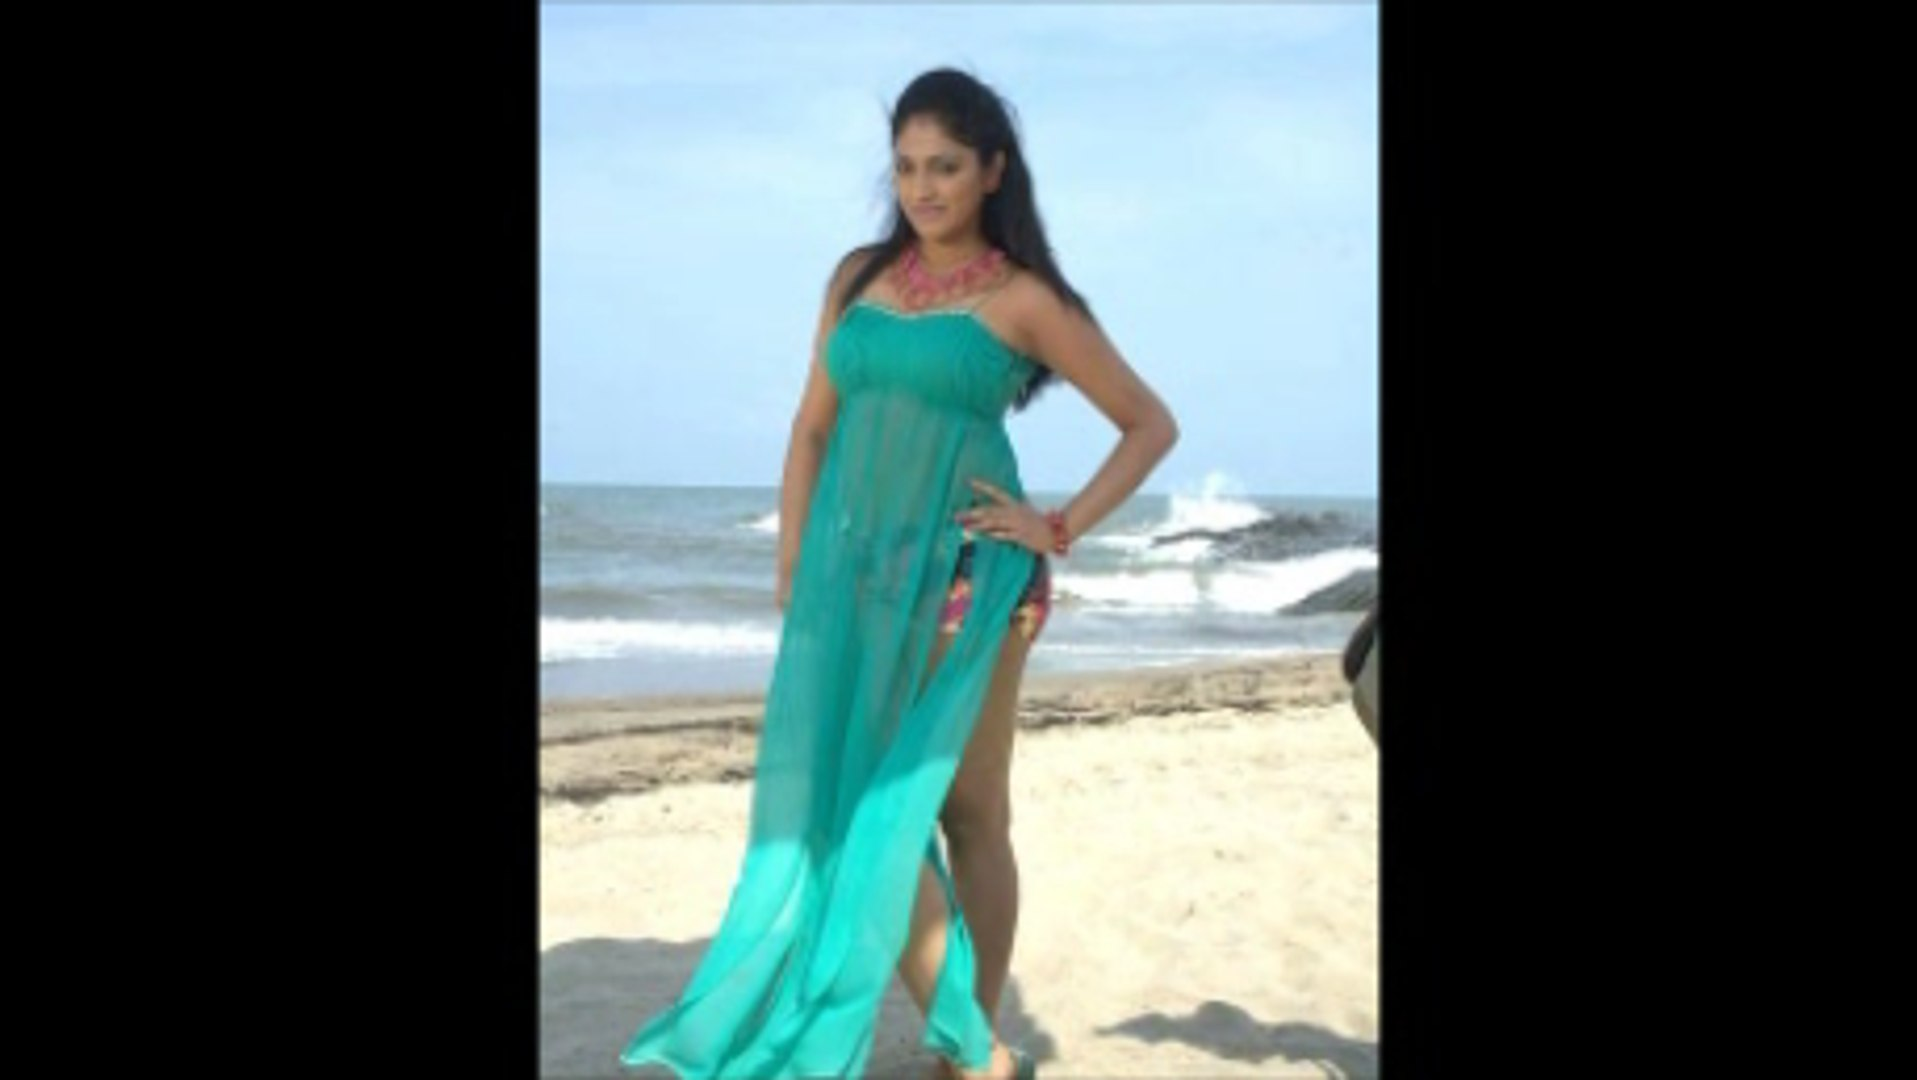 Sexy Haripriya Breaking news 2017|Video chat talks on Haripriya|Indian sexy actresses now